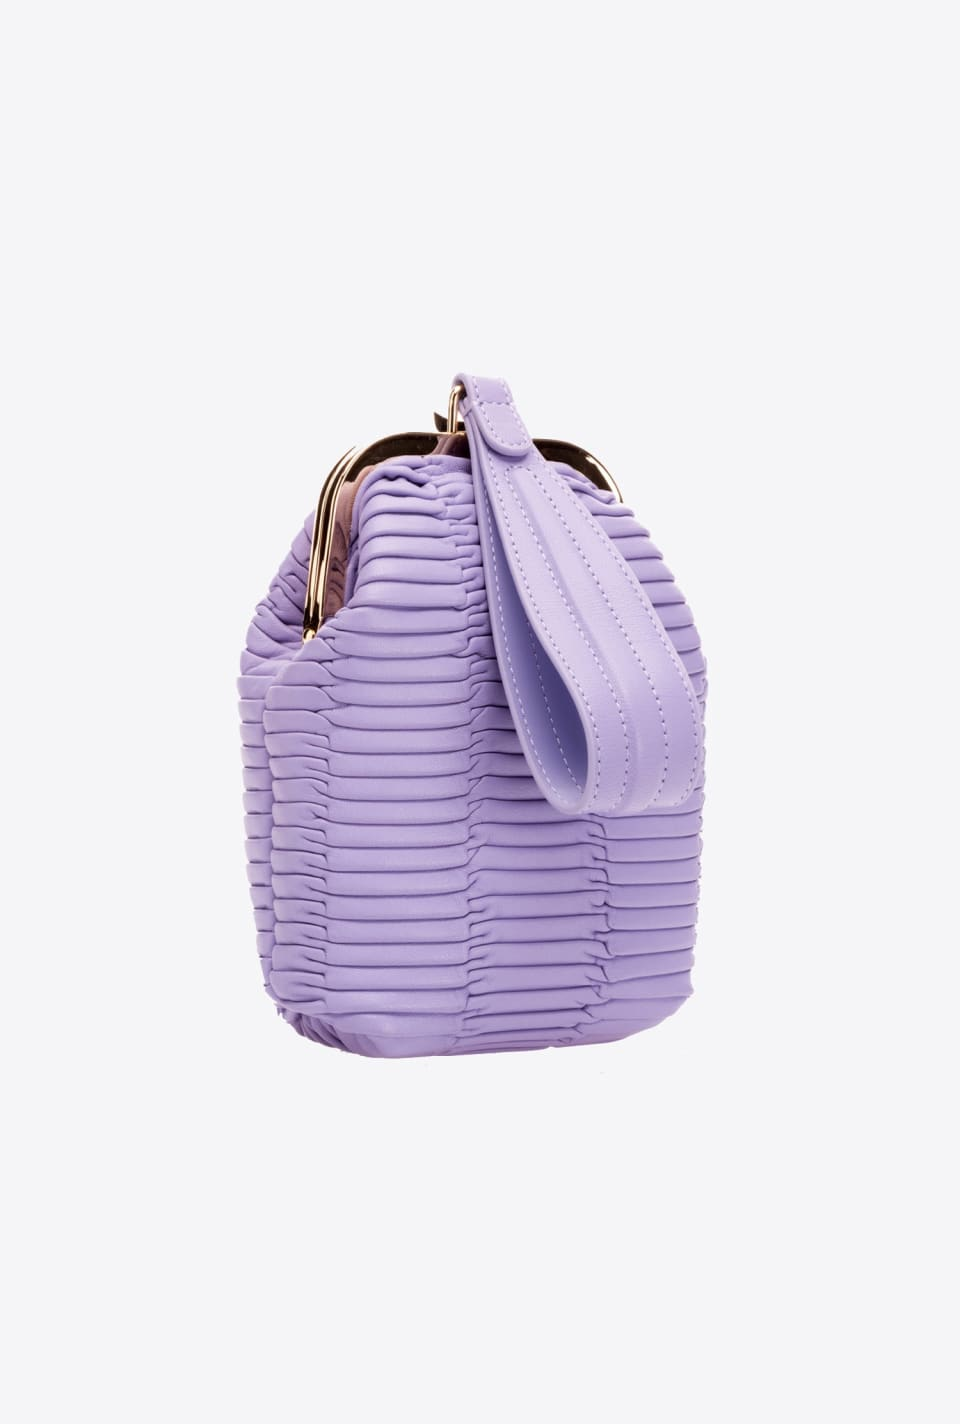 Soft Pouch Bag Origami - Pinko